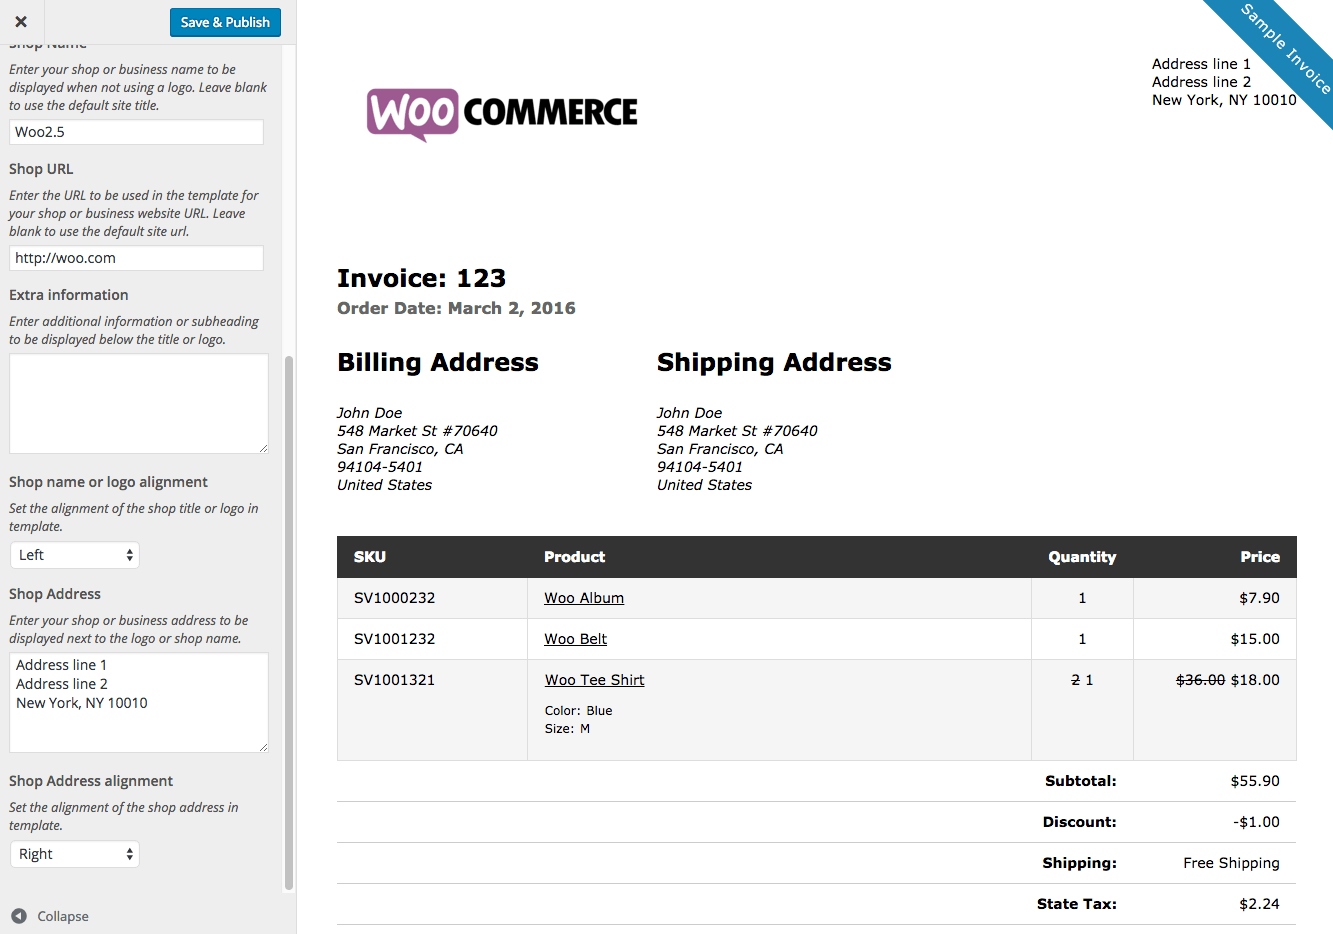 Usdgus  Stunning Print Invoices Amp Packing Lists  Woocommerce With Exciting Woocommerce Print Invoices  Packing Lists Customizer With Amazing Receipt Template Word Free Also Lic Premium Online Receipt In Addition Travelport Viewtrip Eticket Receipt And Receipt Document Template As Well As Paid Receipt Template Free Additionally Official Receipt Sample Format From Woocommercecom With Usdgus  Exciting Print Invoices Amp Packing Lists  Woocommerce With Amazing Woocommerce Print Invoices  Packing Lists Customizer And Stunning Receipt Template Word Free Also Lic Premium Online Receipt In Addition Travelport Viewtrip Eticket Receipt From Woocommercecom